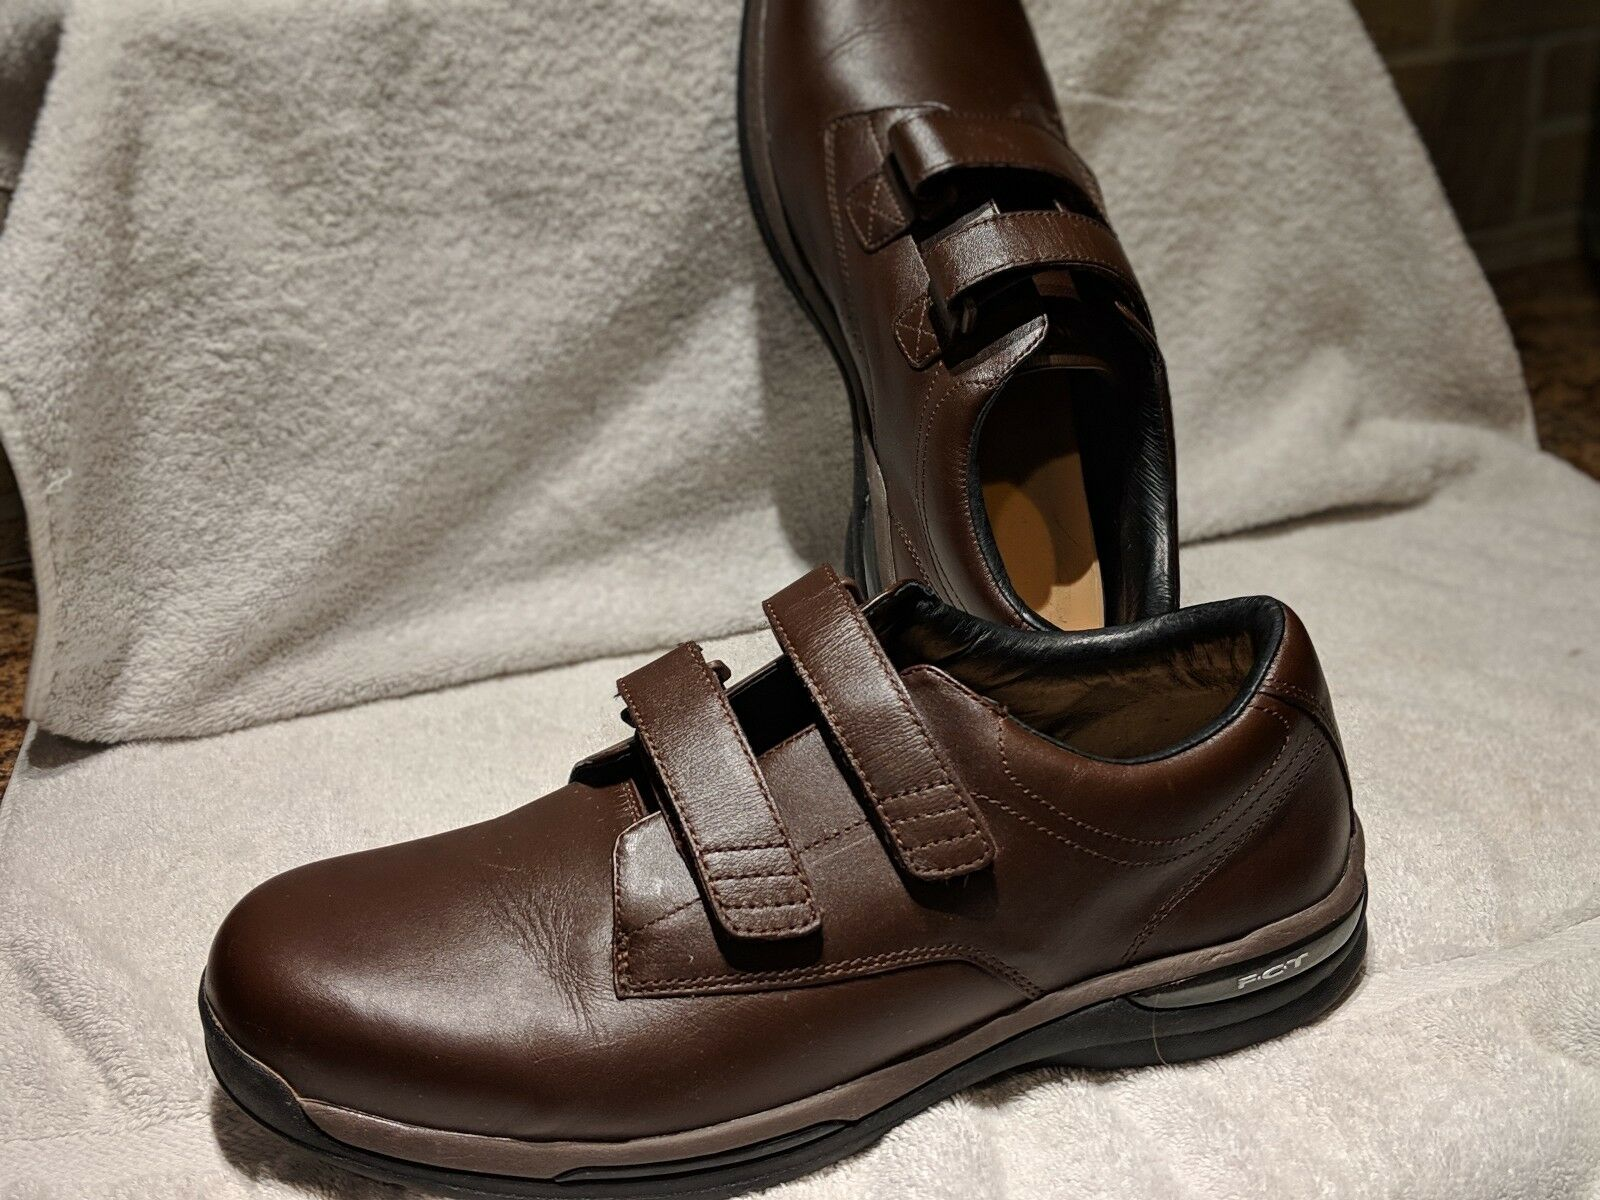 Oasis Nevis H & L Men's 2 Strap Brown Leather Diabetic Comfort shoes. FCT 13W